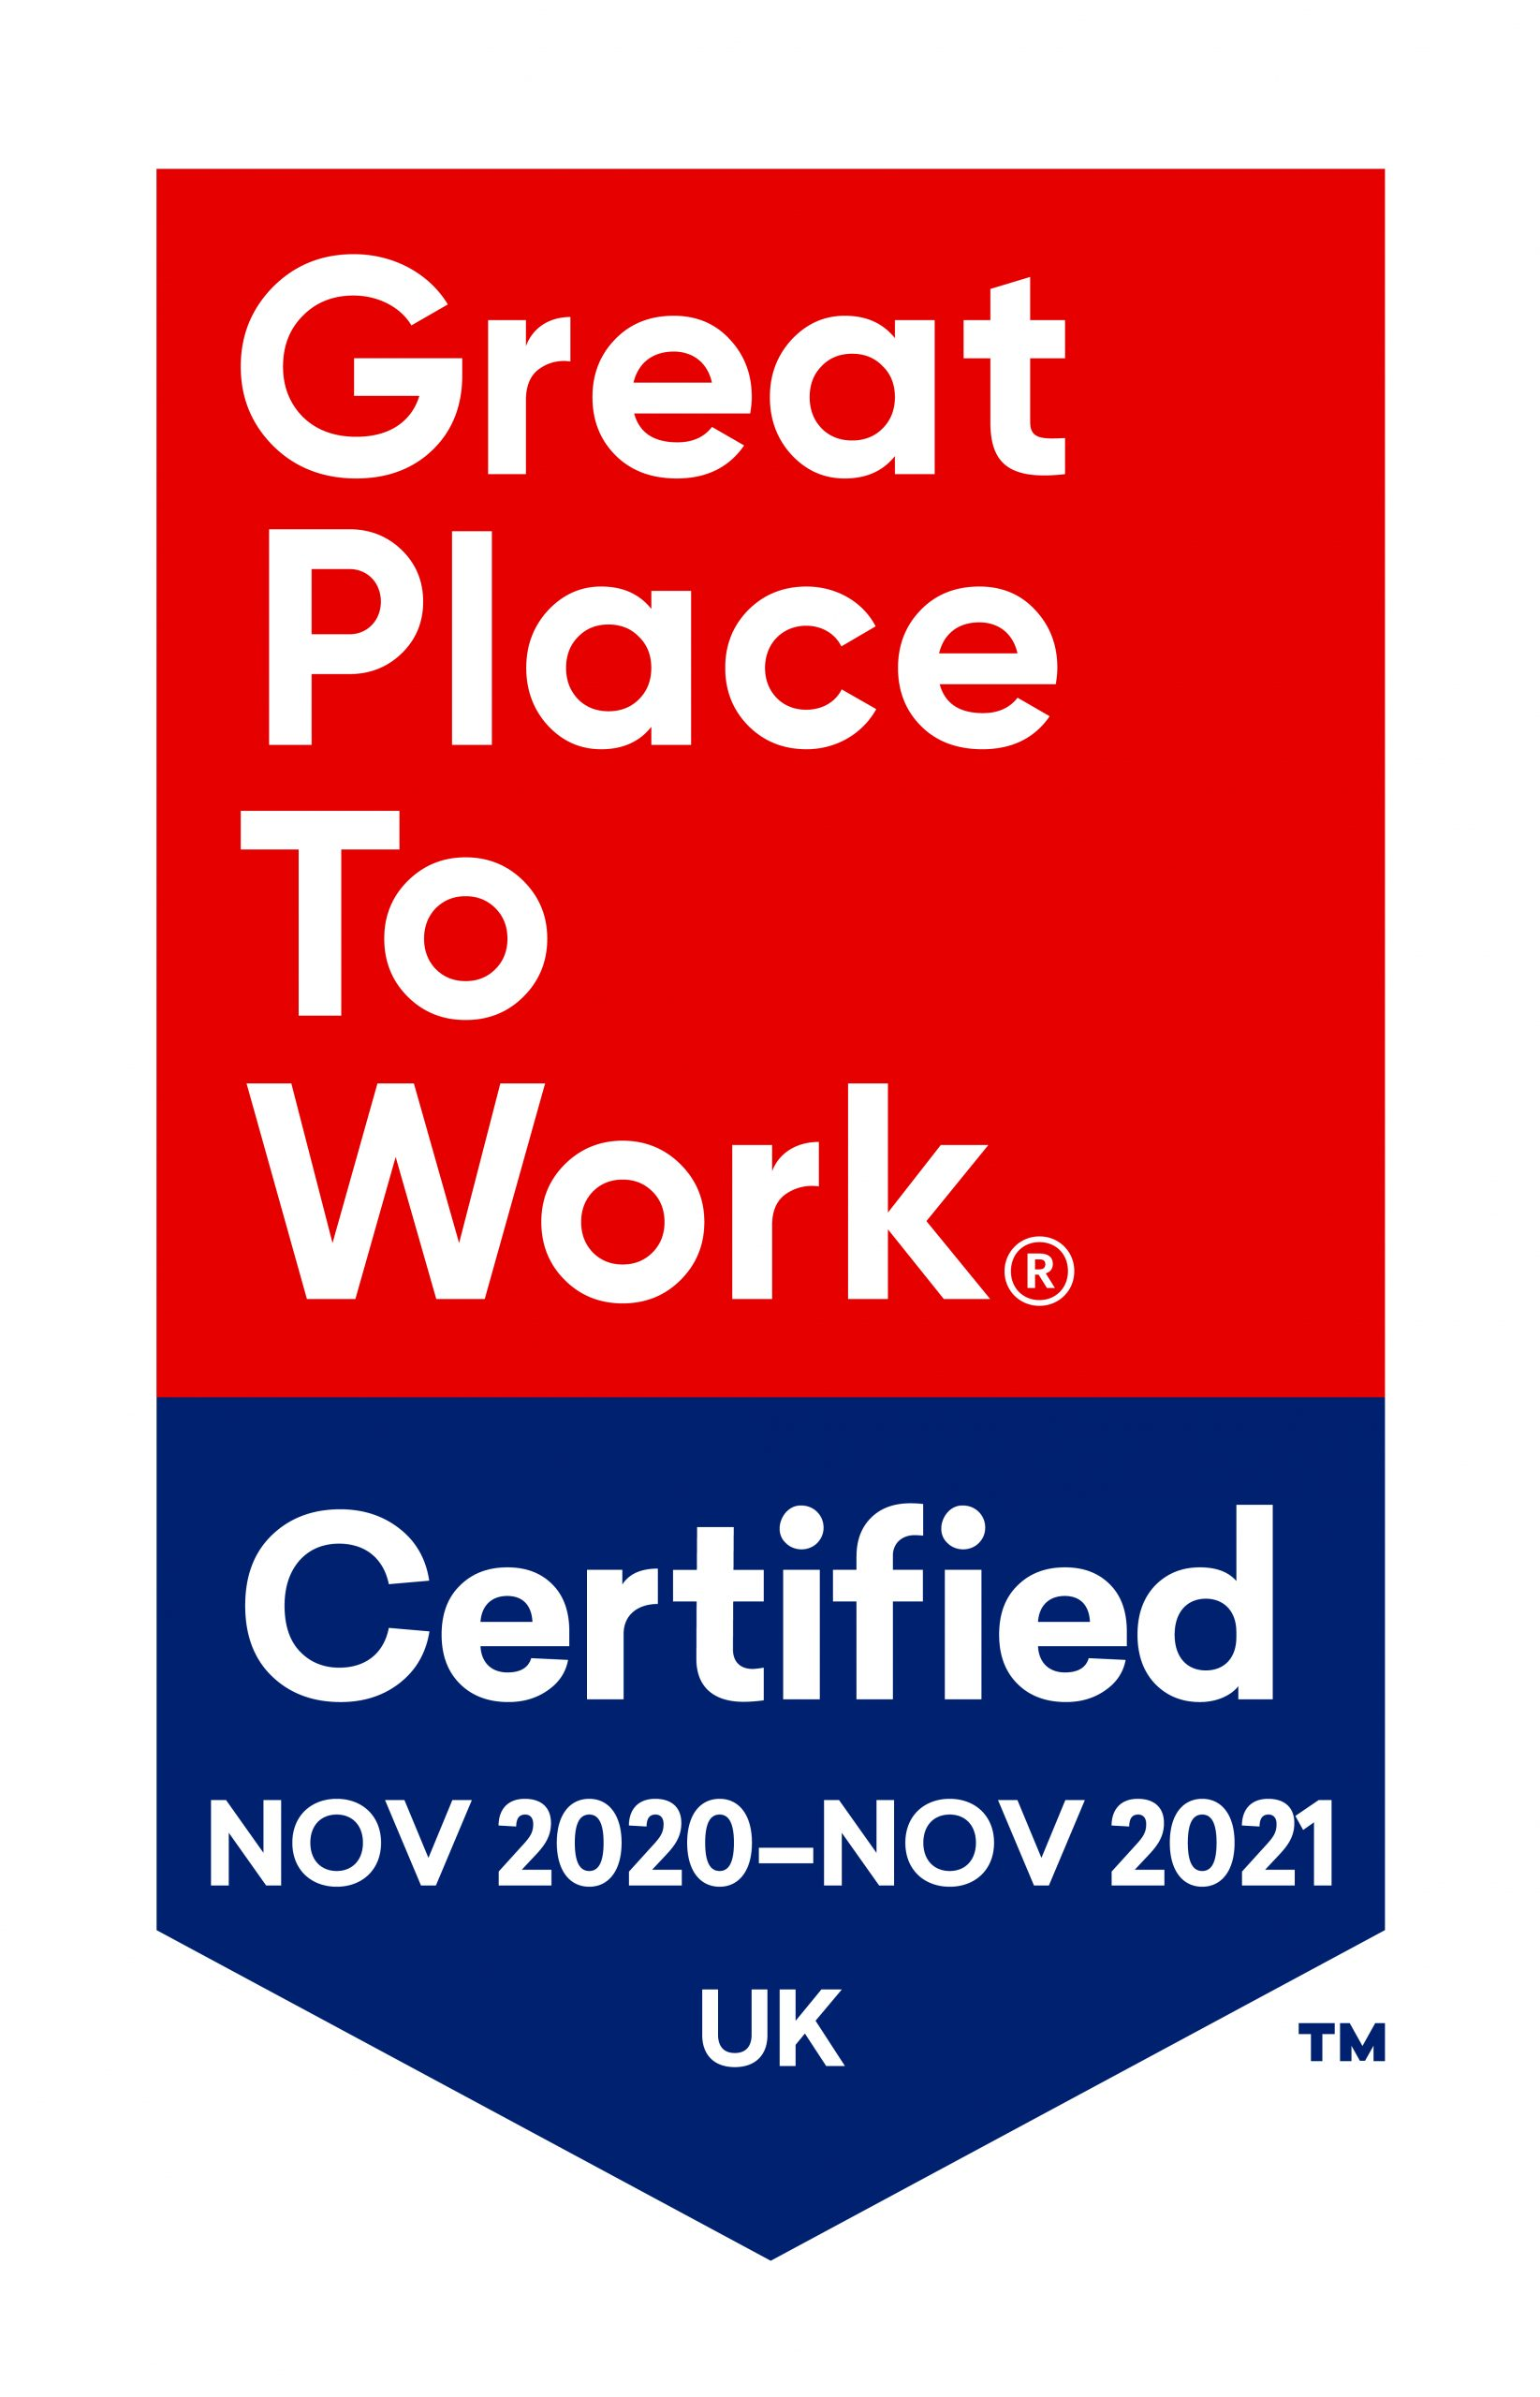 Chesterfield College Great Places to Work certification mark